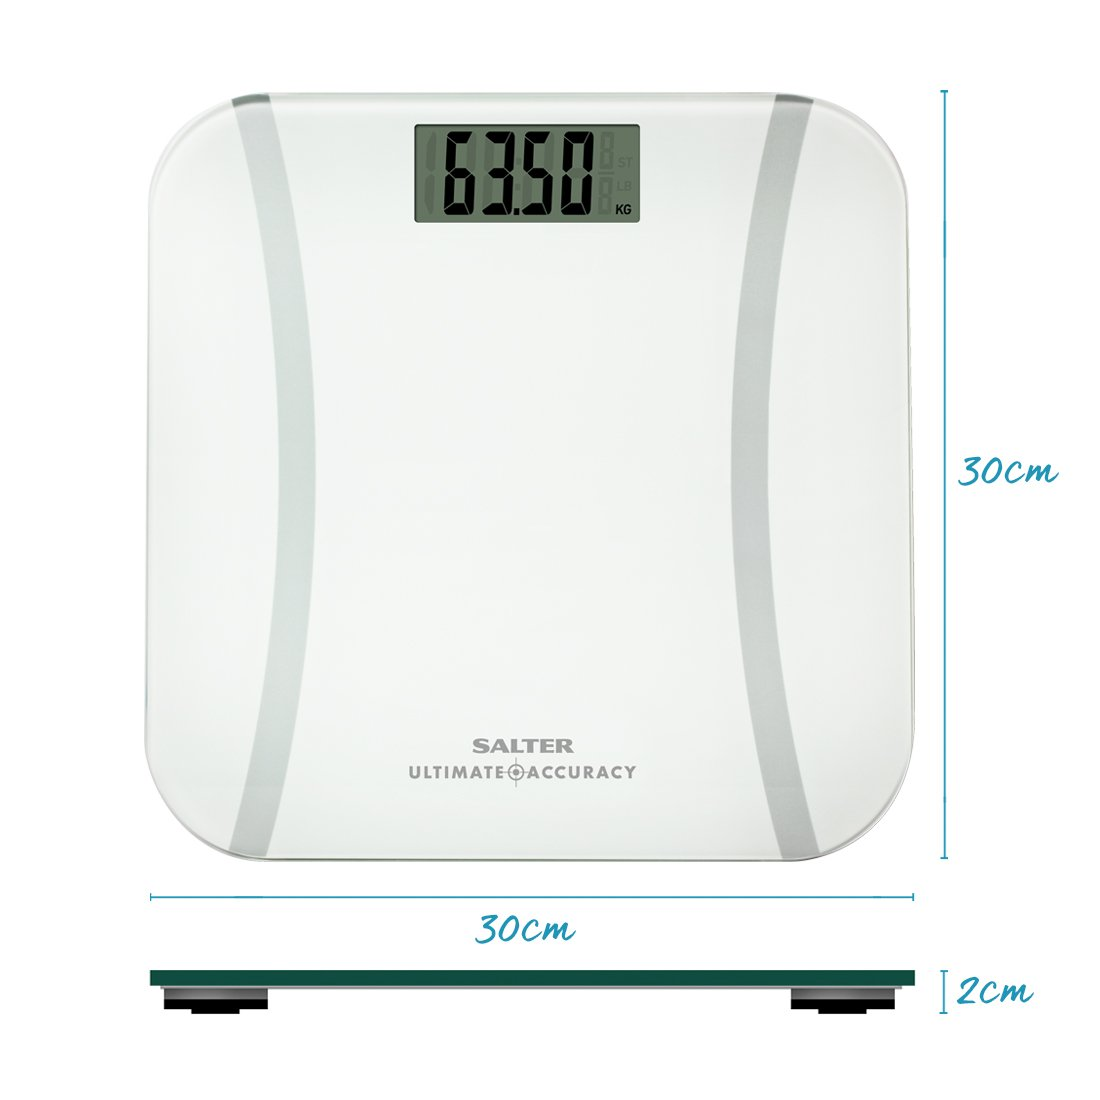 White Measurement 50 g Increments Salter Ultimate Accuracy Electronic Digital Bathroom Scales